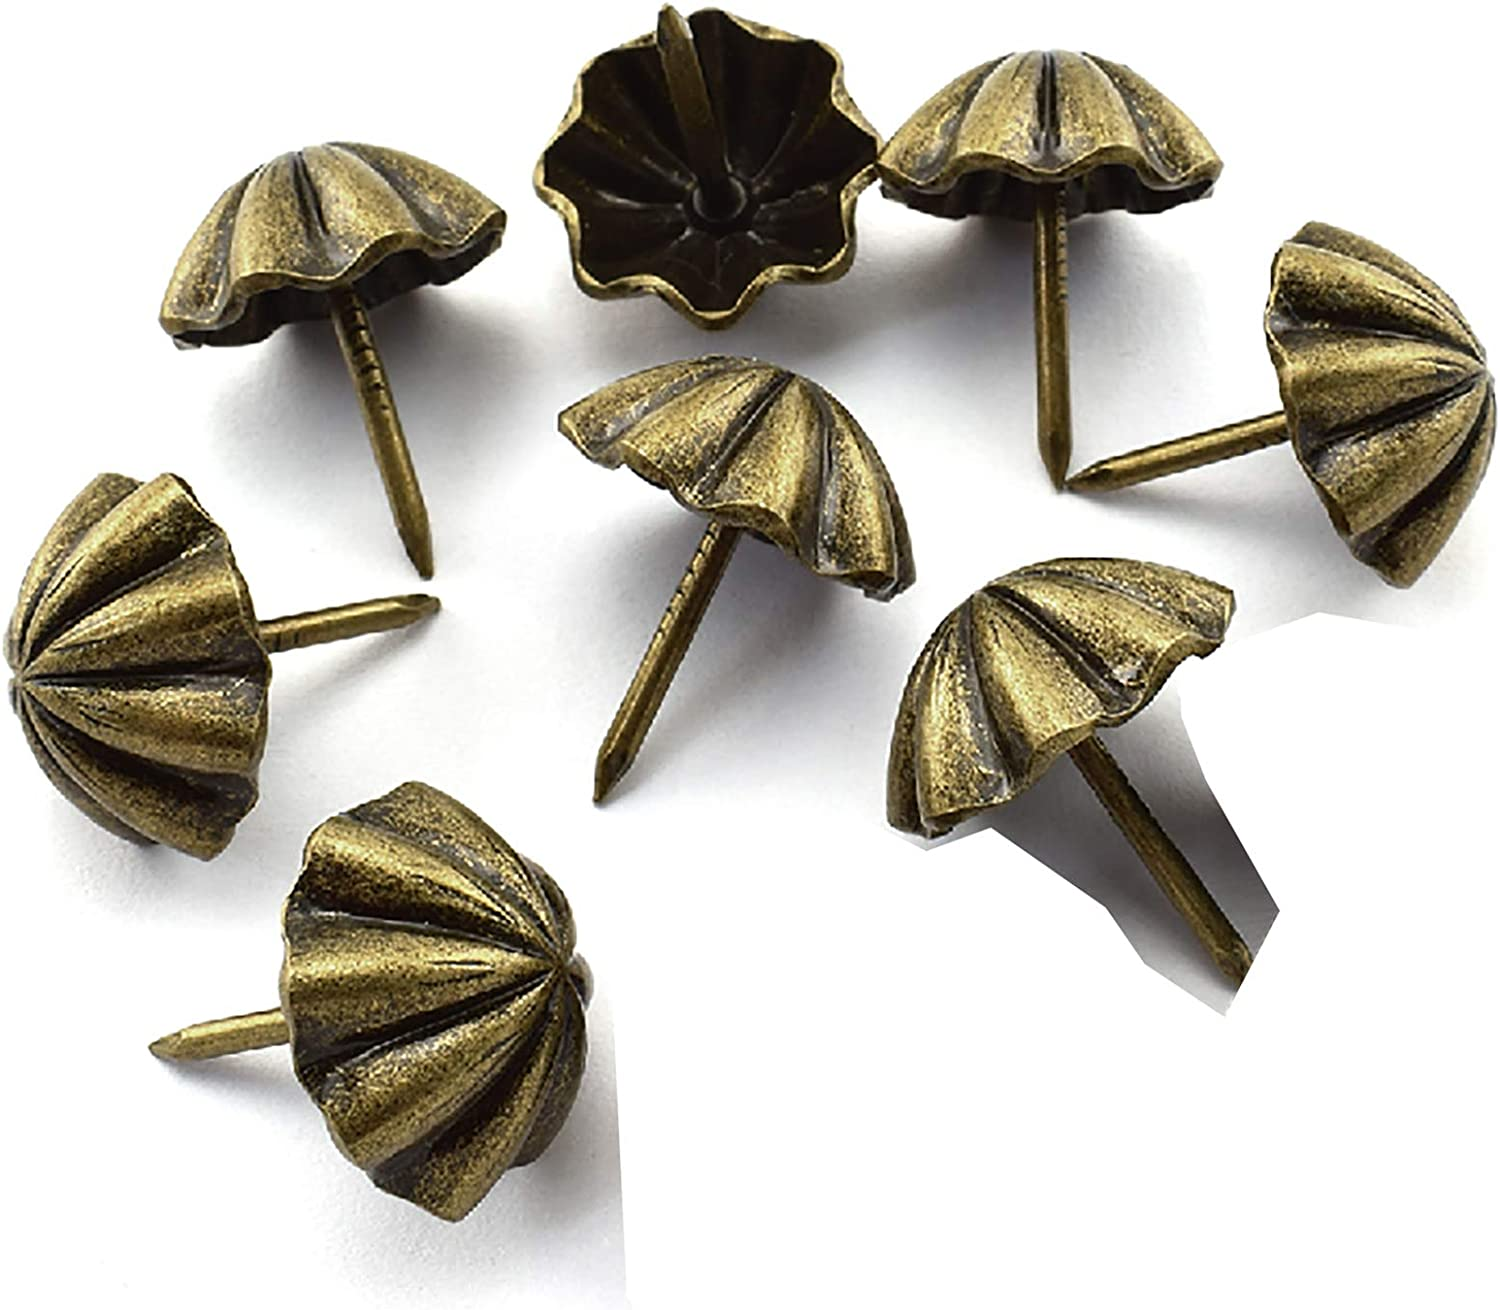 Antique Upholstery Tacks OZXNO Limited Special Price Umbrella-Shape PCS 10 Now free shipping Decorative